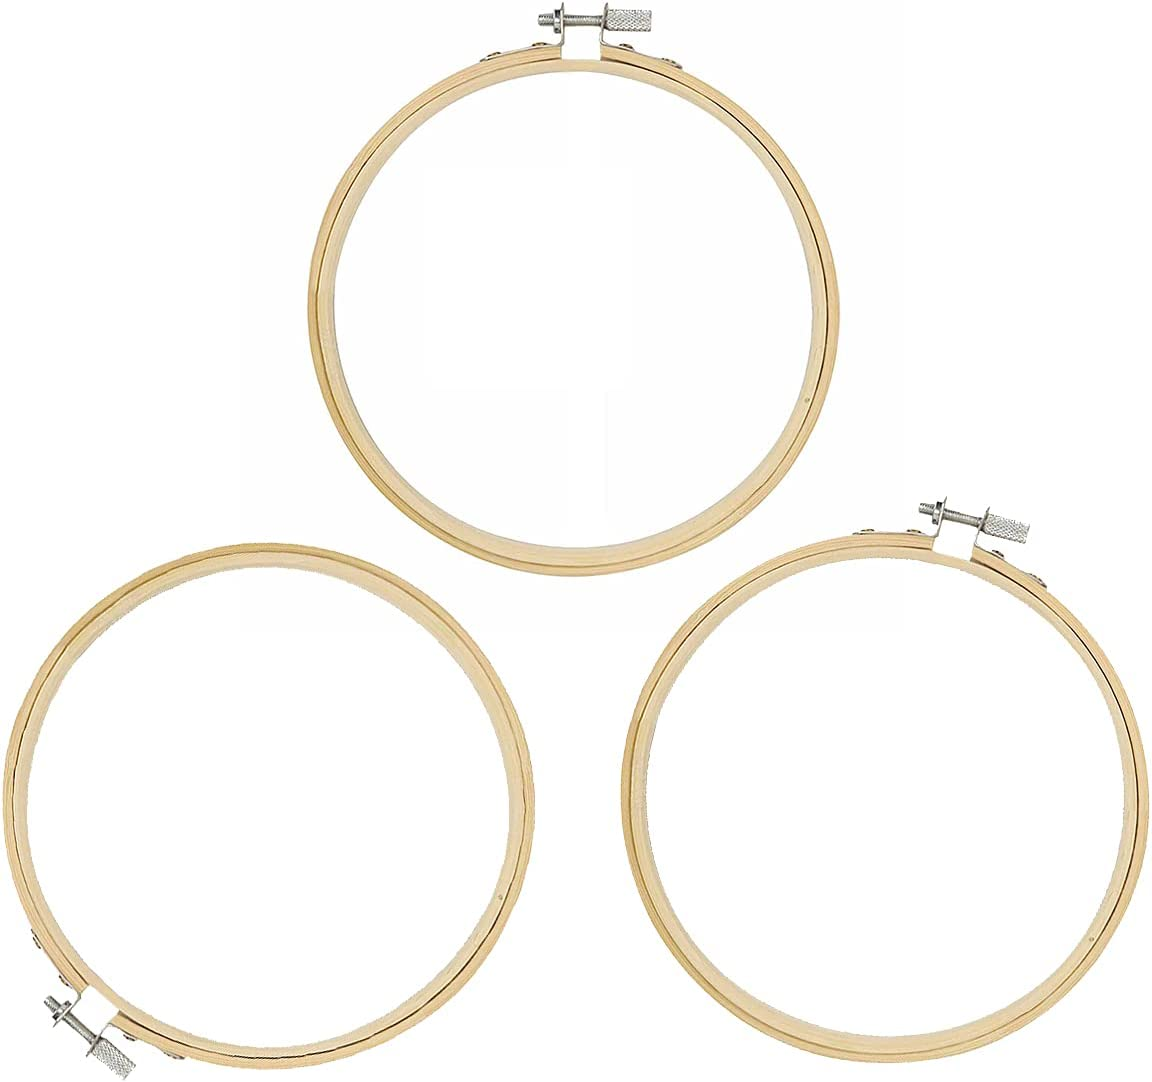 JANEMO discount 3 Pcs Wooden Round Durable Od Inches Hoops,4 Embroidery [Alternative dealer]